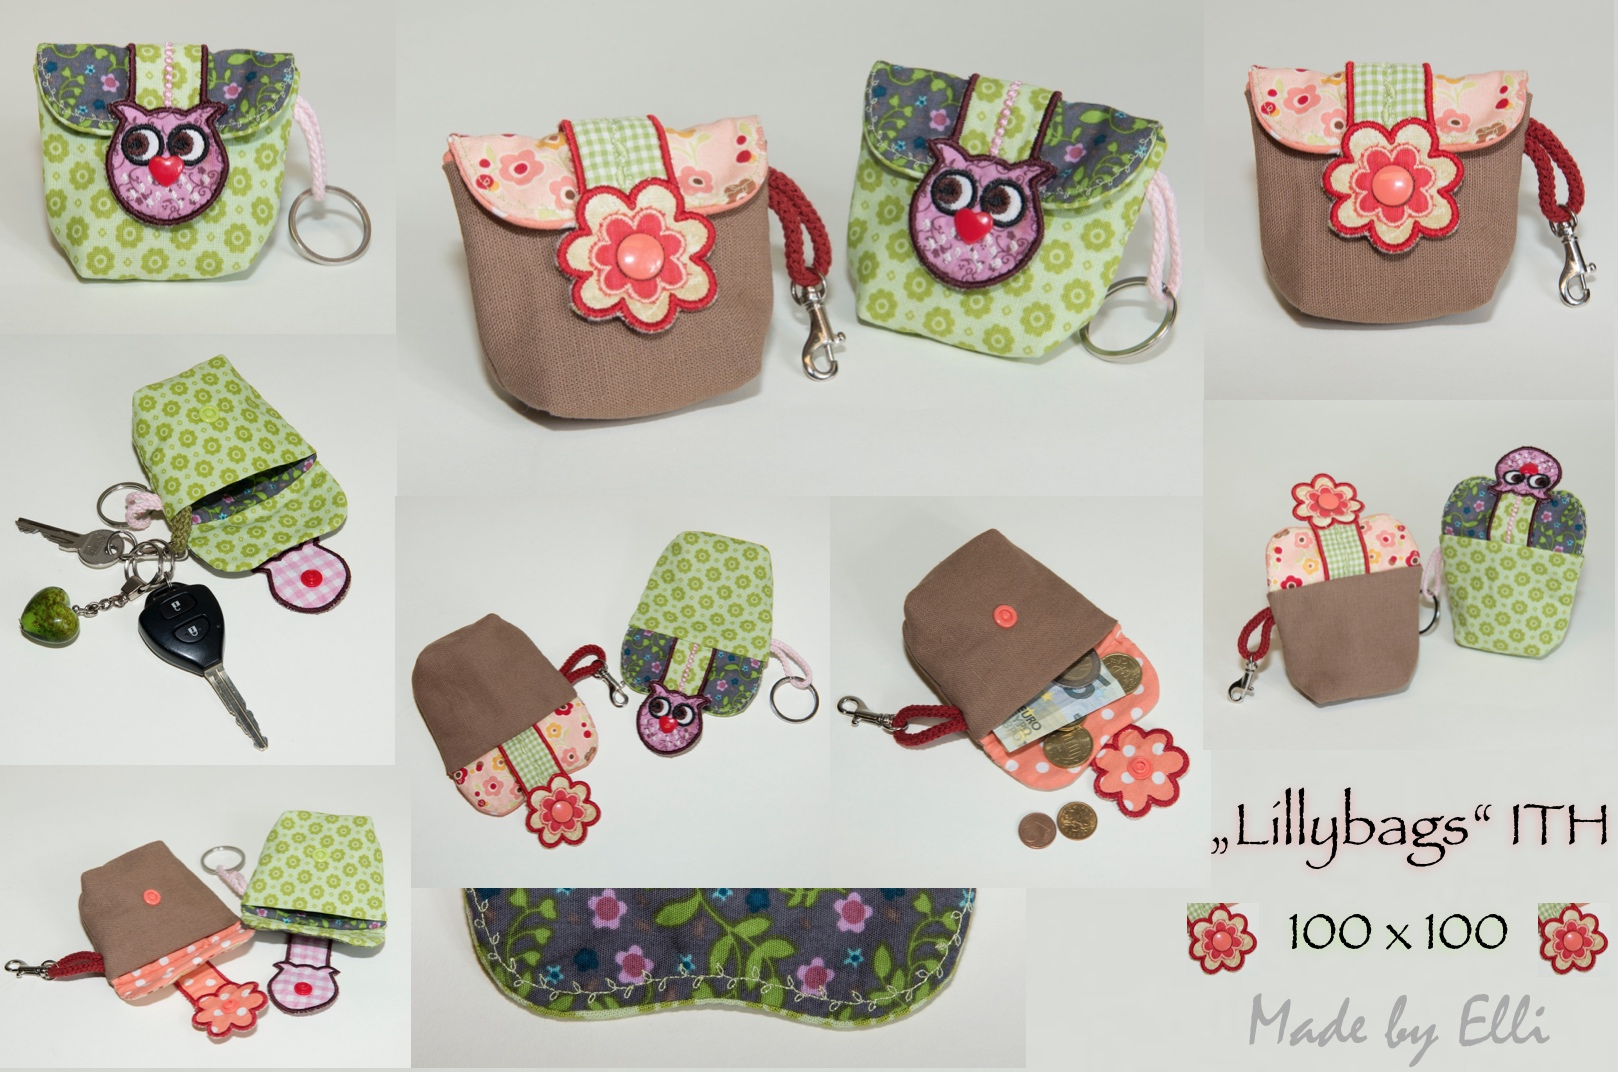 Lillybags ITH